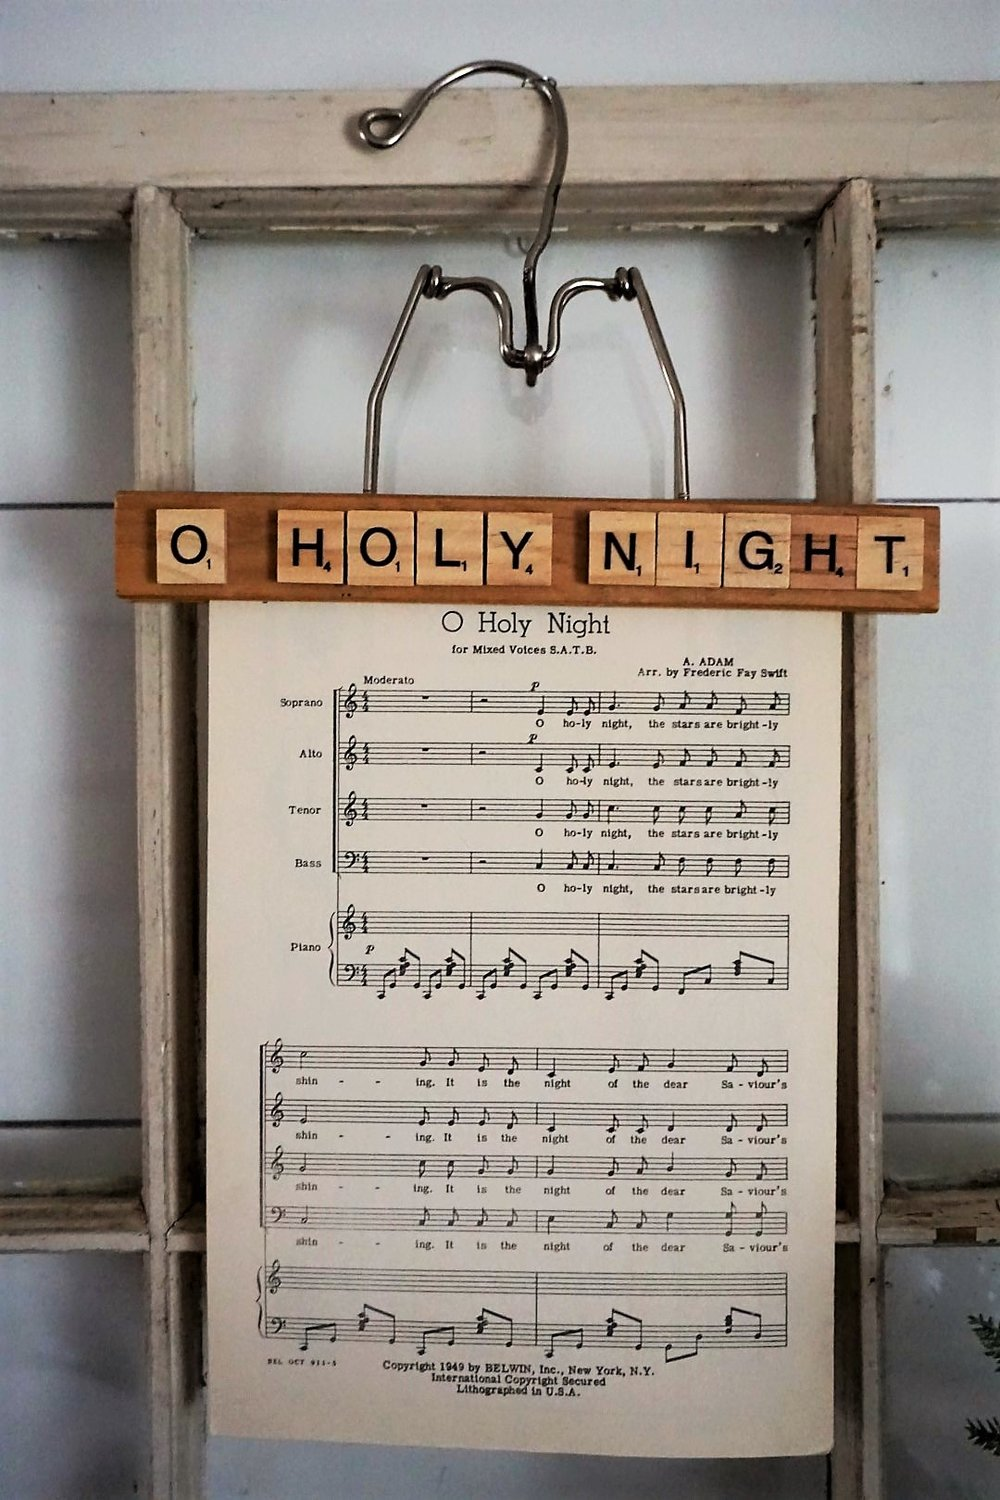 O Holy Night sheet music makes beautiful a Christmas decoration.